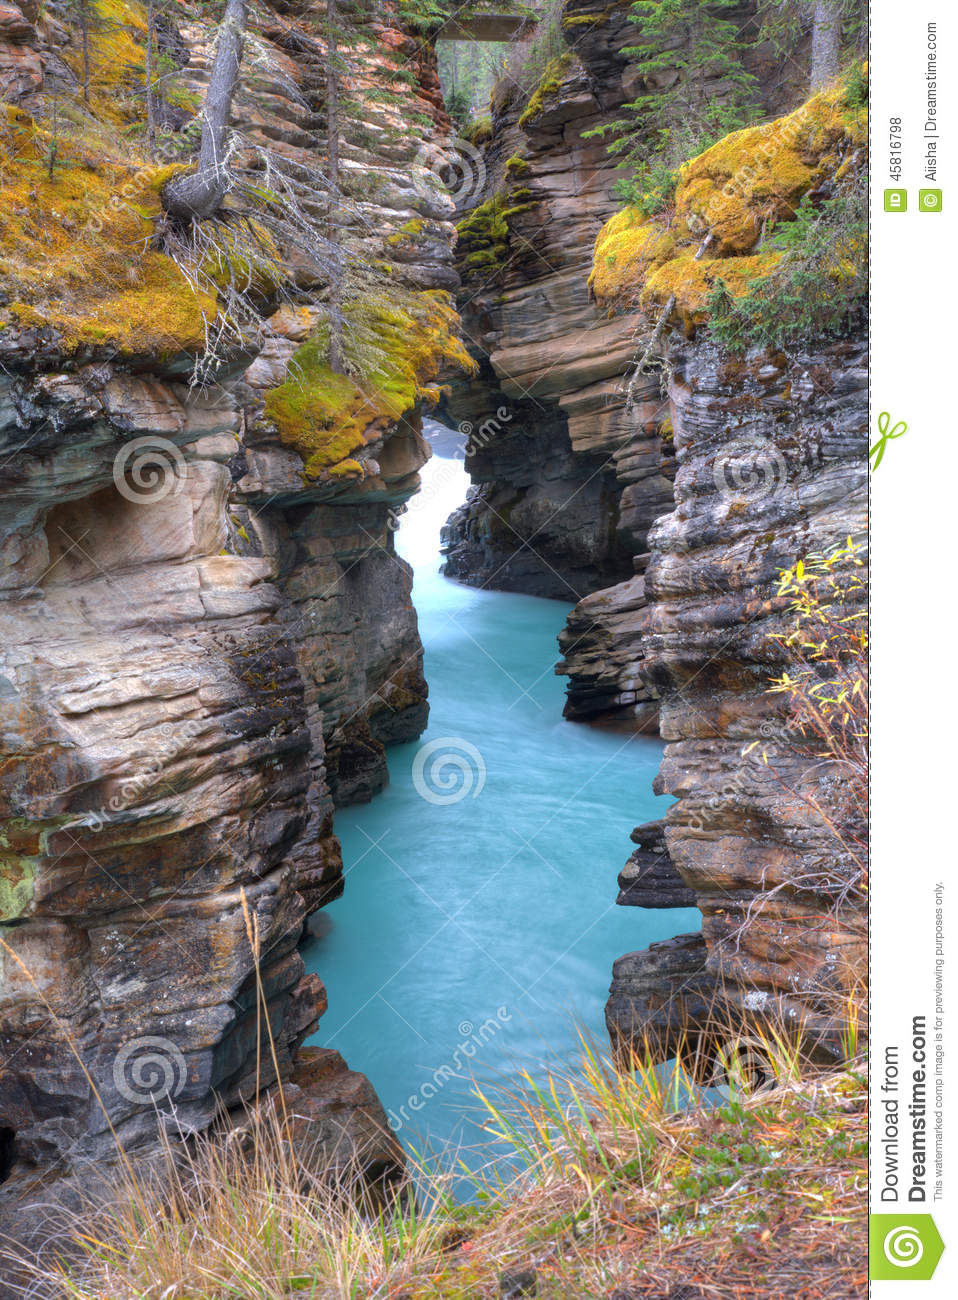 Athabasca Falls clipart #5, Download drawings